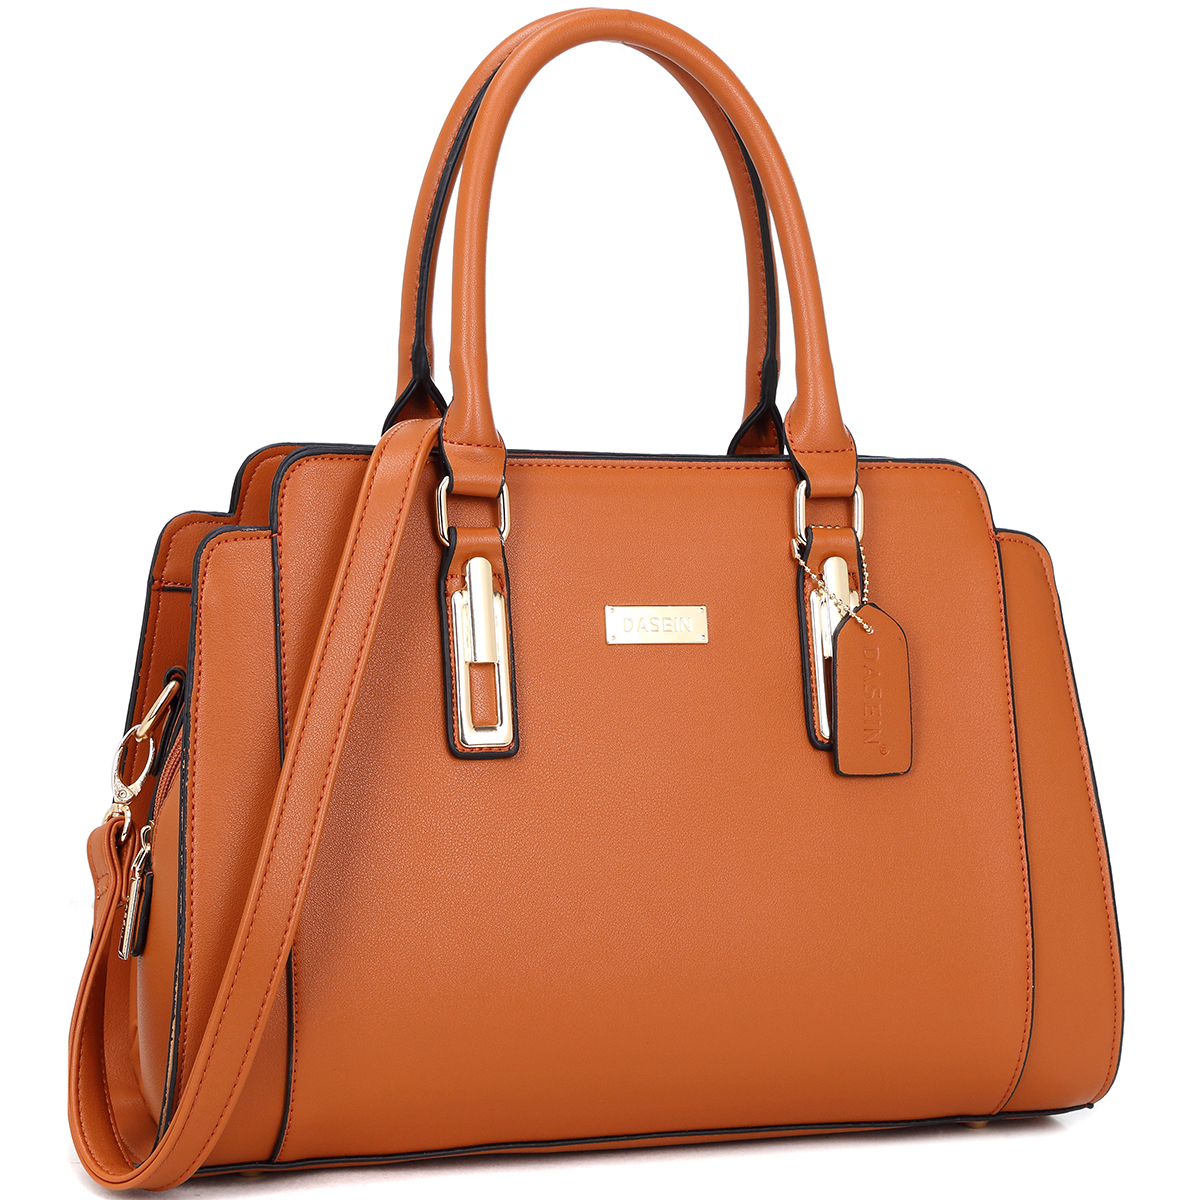 Women's Faux Leather Medium Satchel